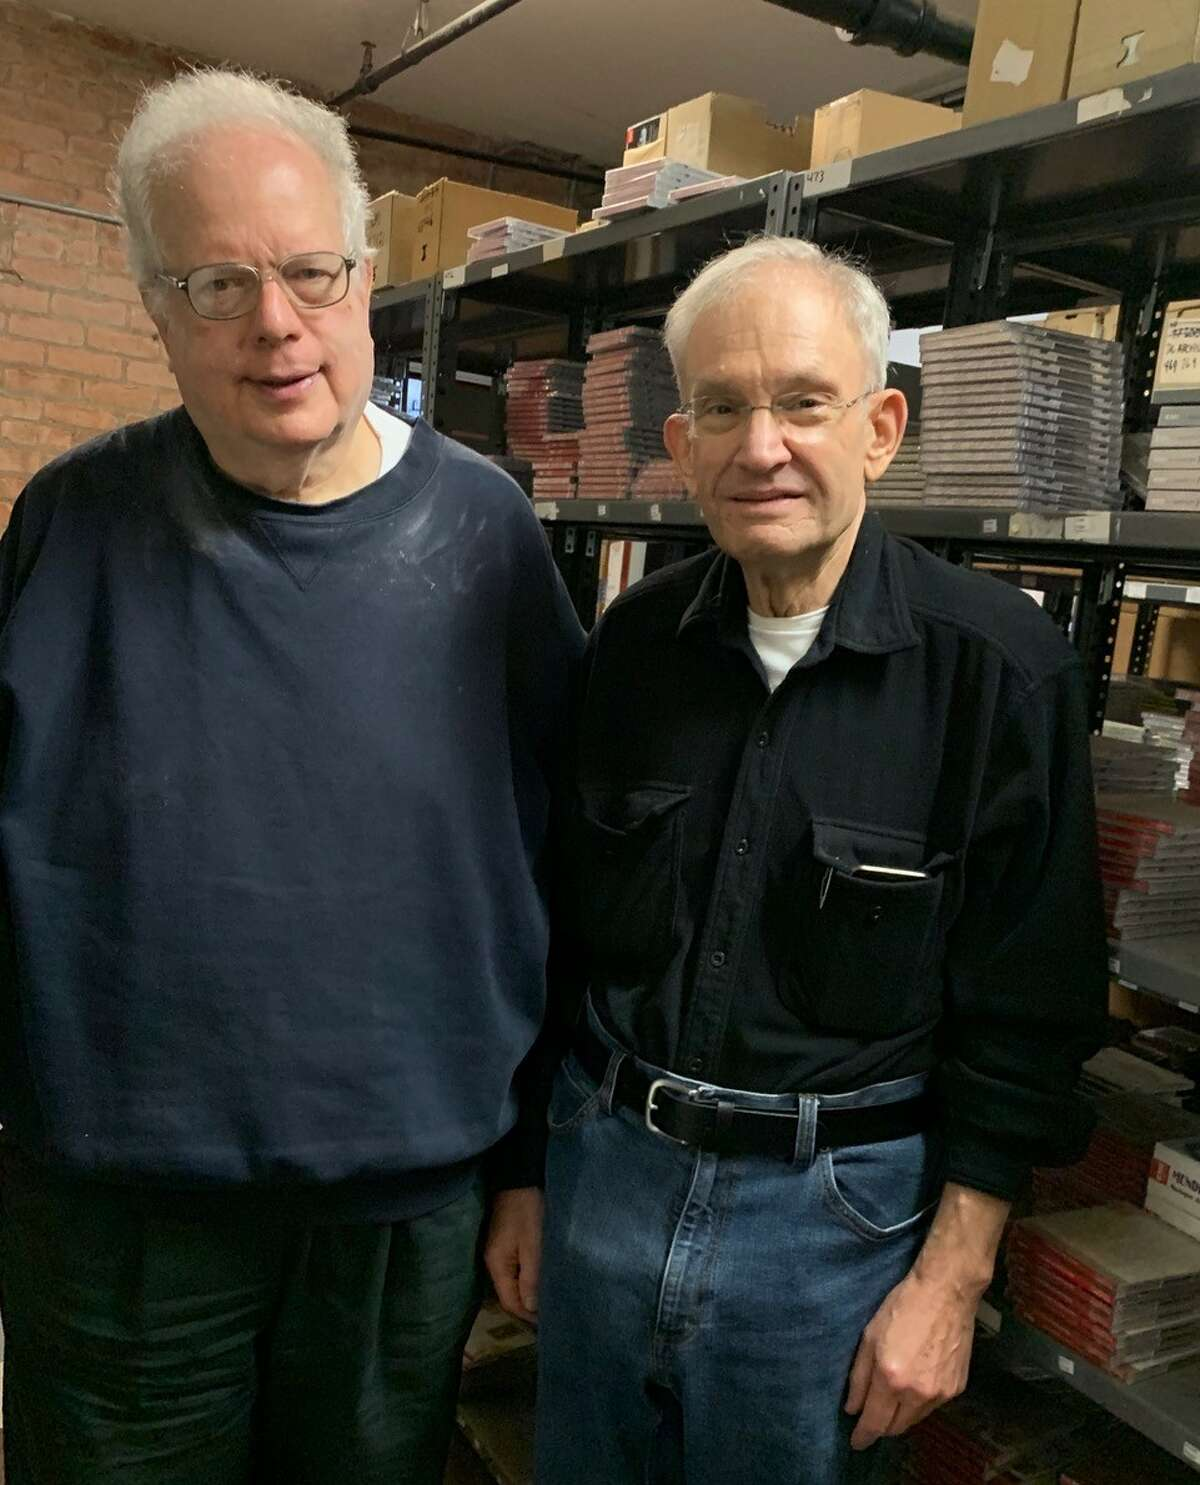 L-R Joe Eckstein of Berkshire Record Outlet and Peter Kermani of Albany Records